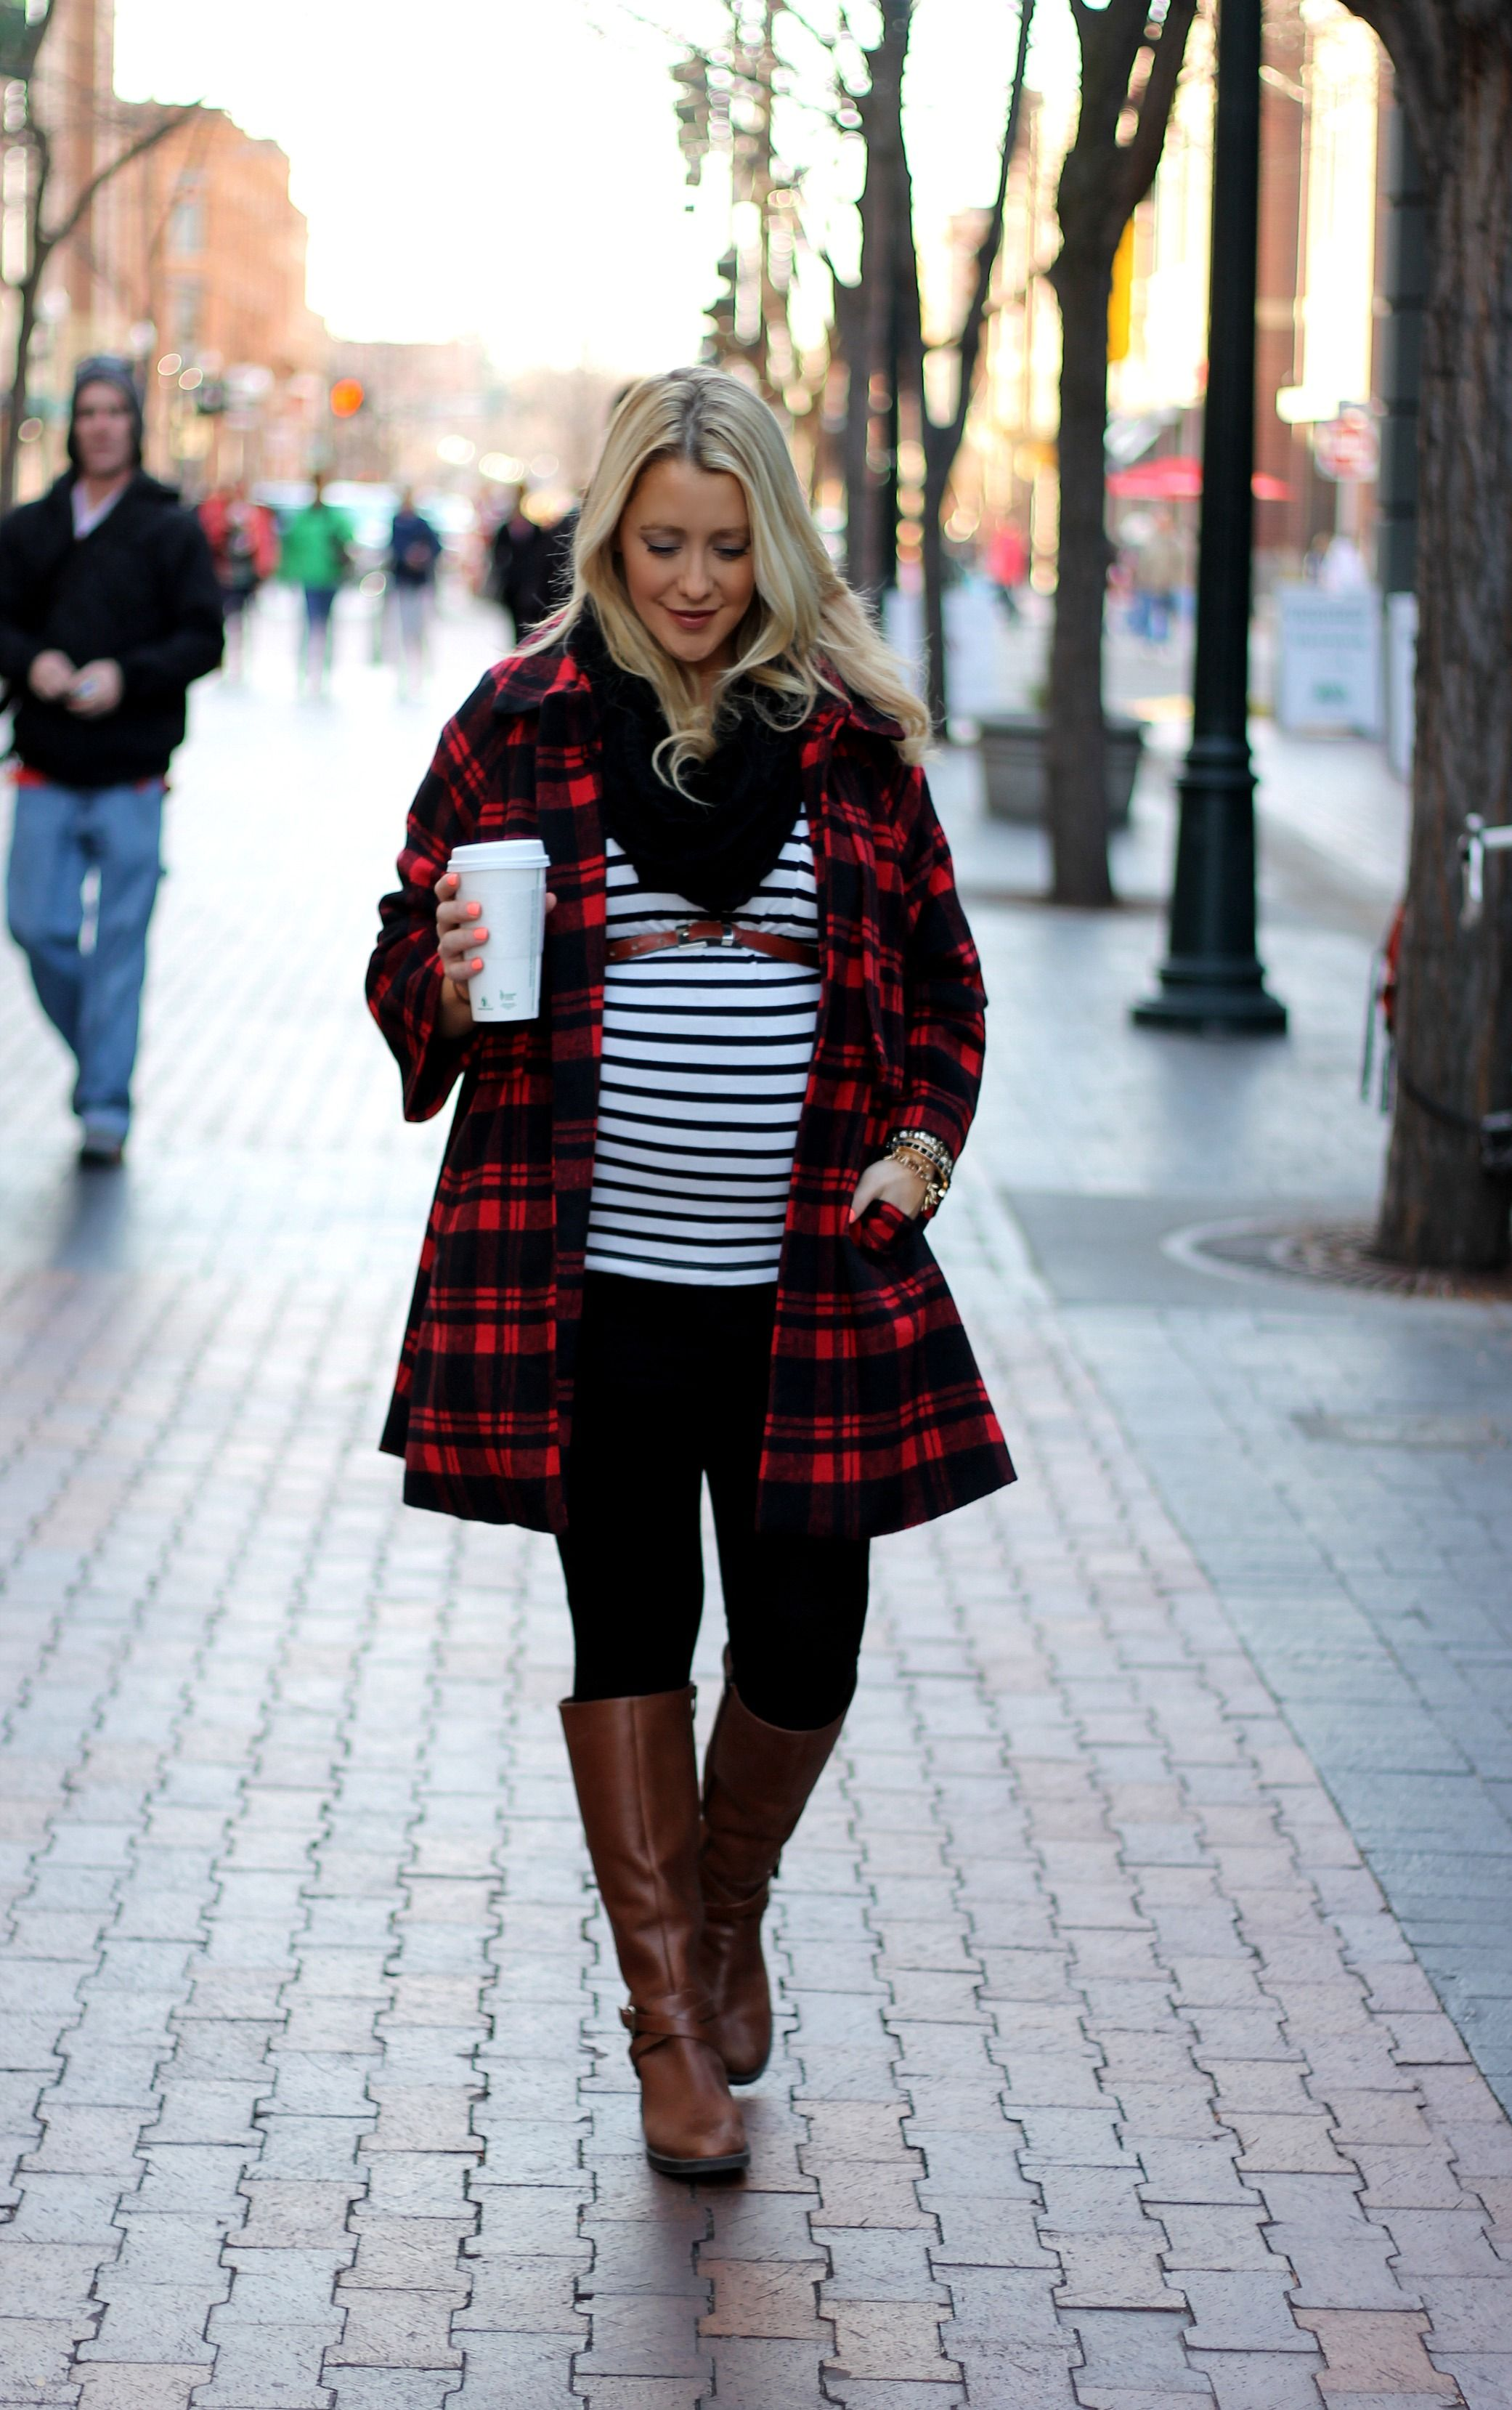 c9d3330cbc0e1 Cute winter maternity outfit with plaid and stripes. | Maternity ...